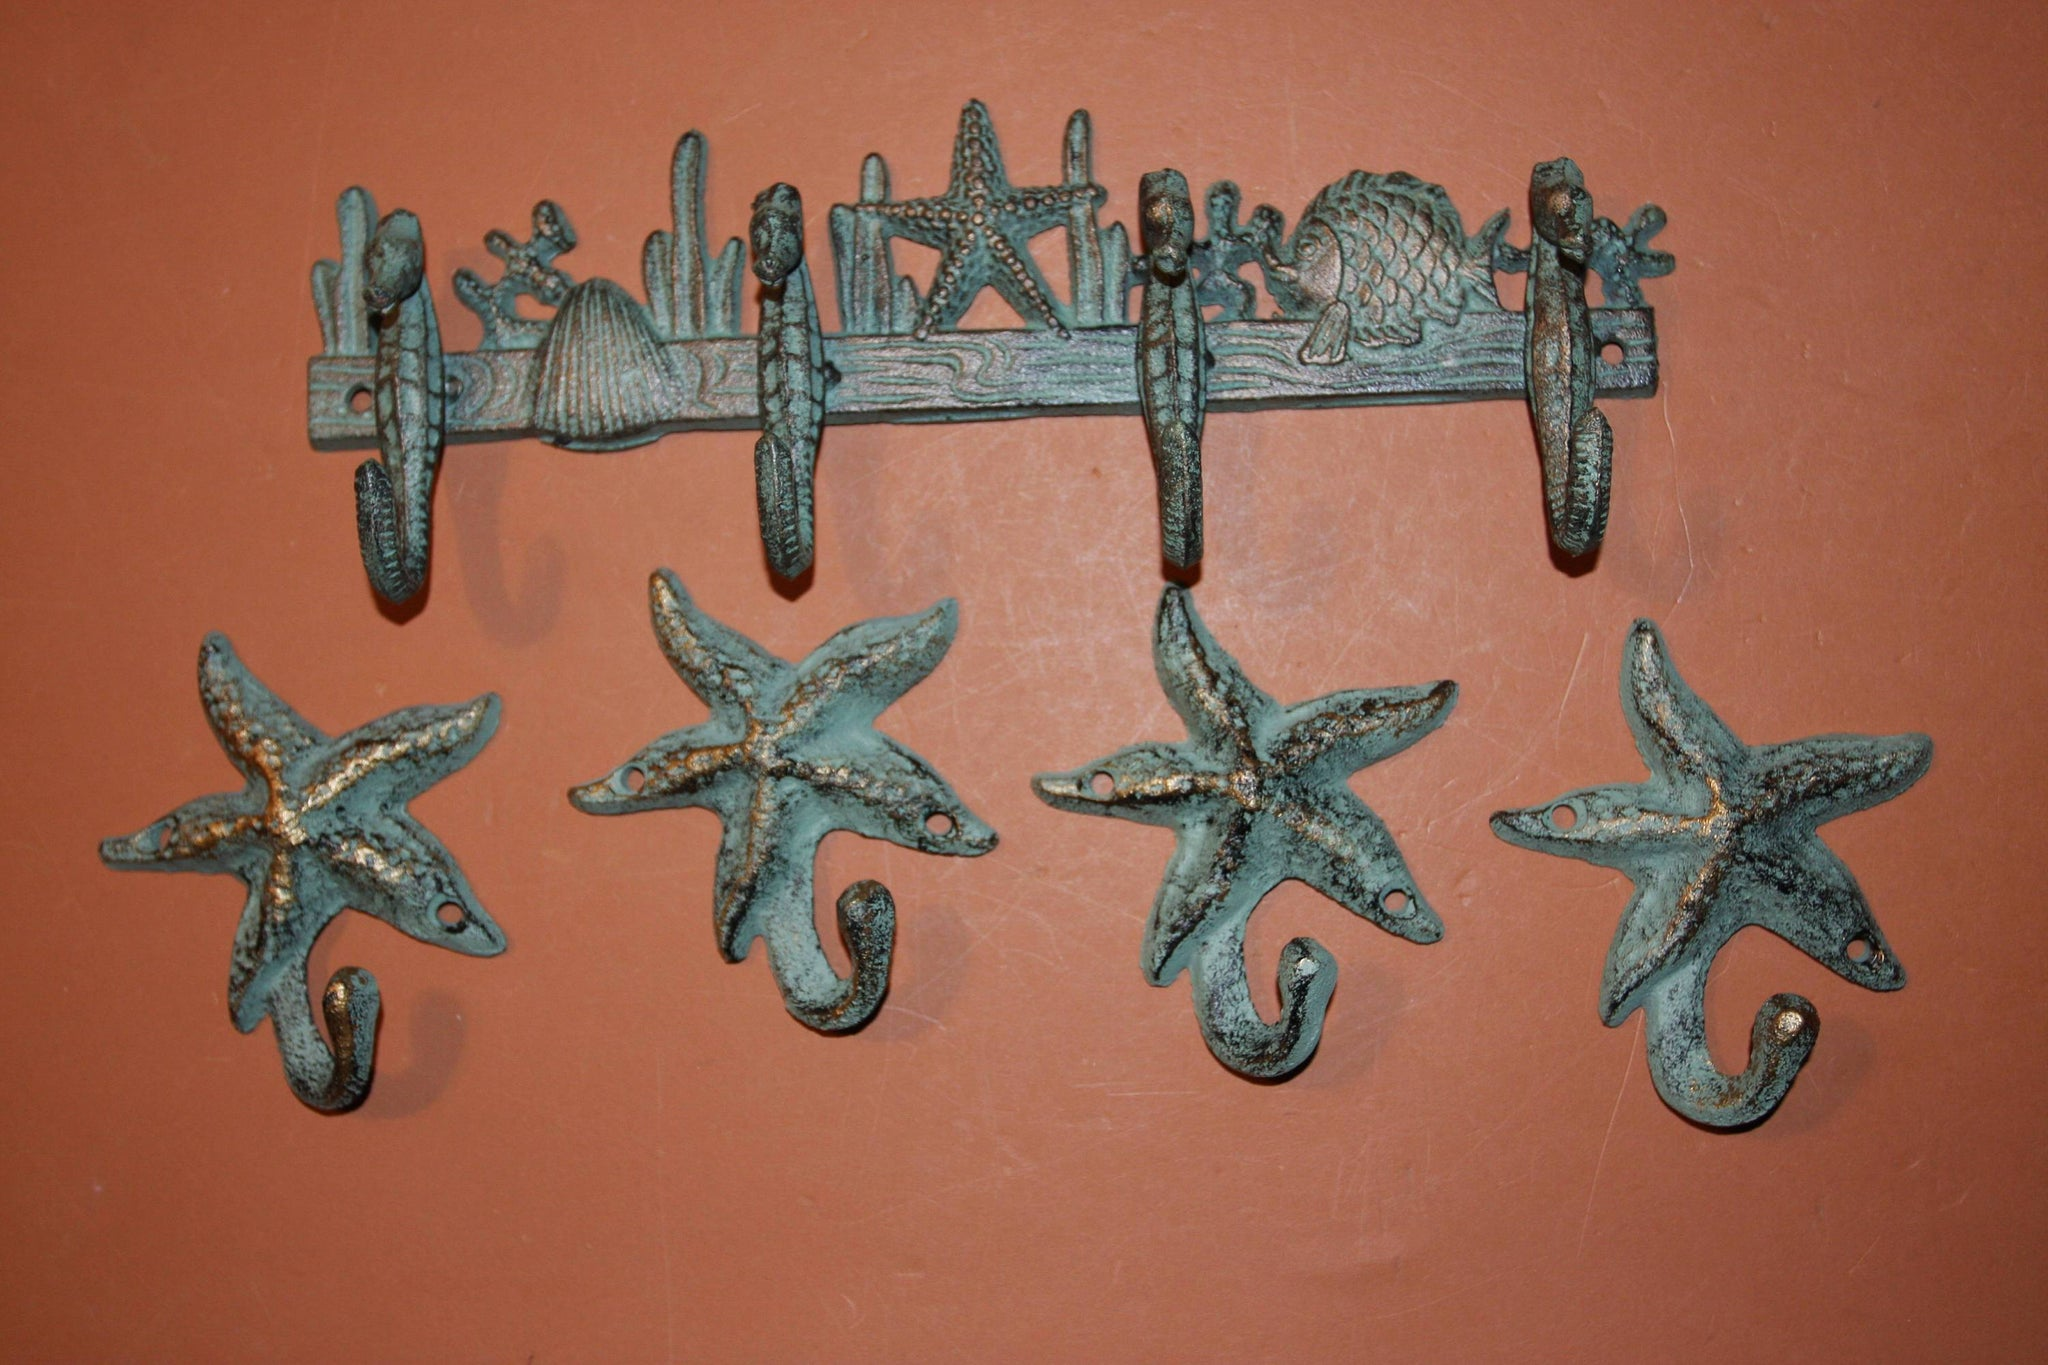 5), Seahorse Towel Hook Set of 5, Free Shipping, Cast Iron Bronze-look Seahorse Starfish Bath Towel Hook Set, Beach,  H-32,N-24